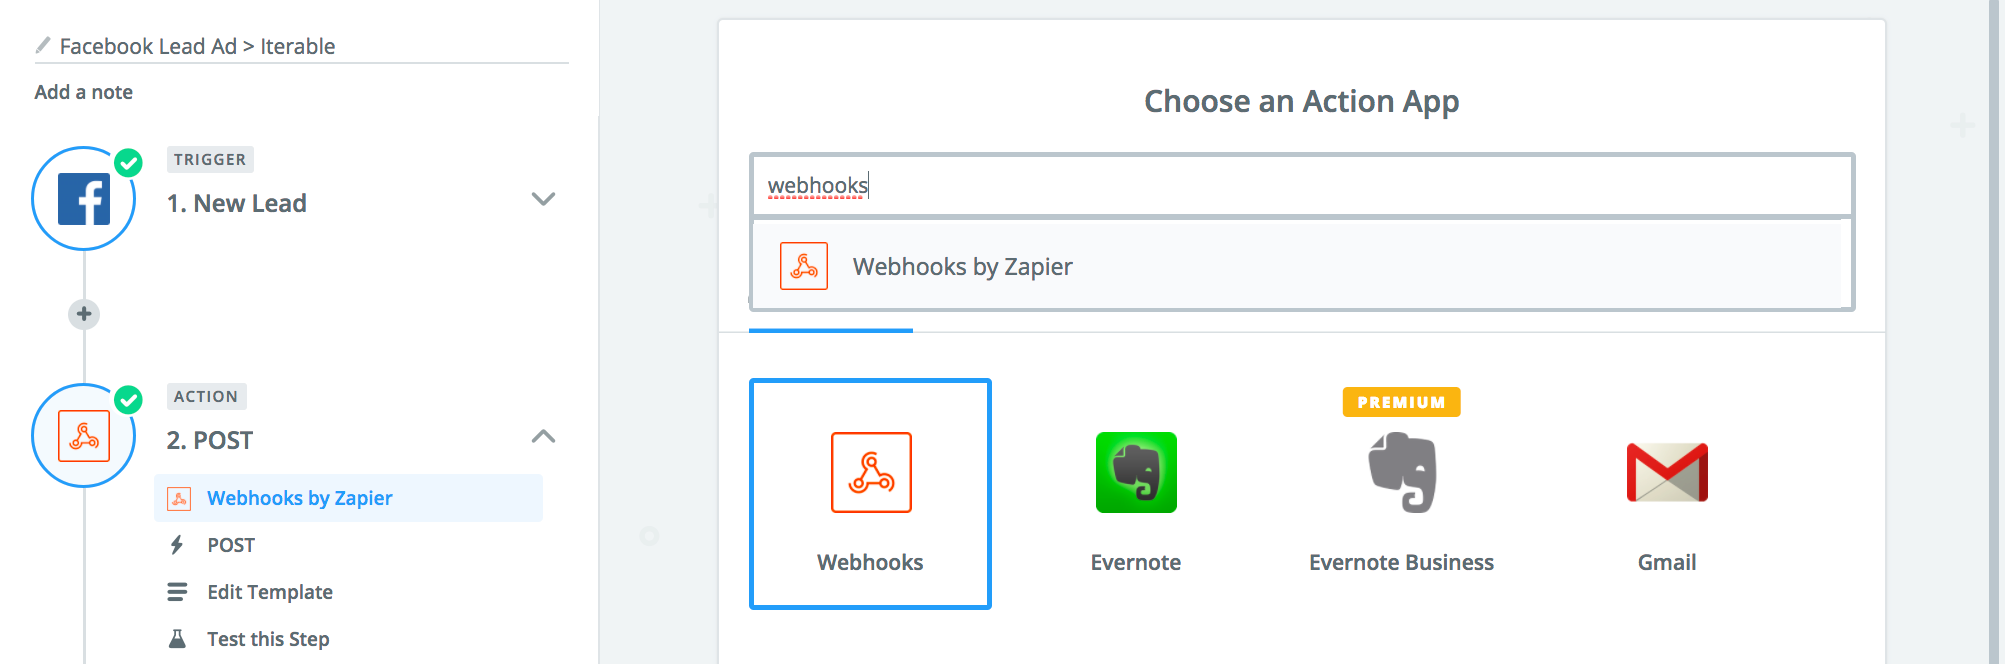 Selecting Webhooks as the Action app